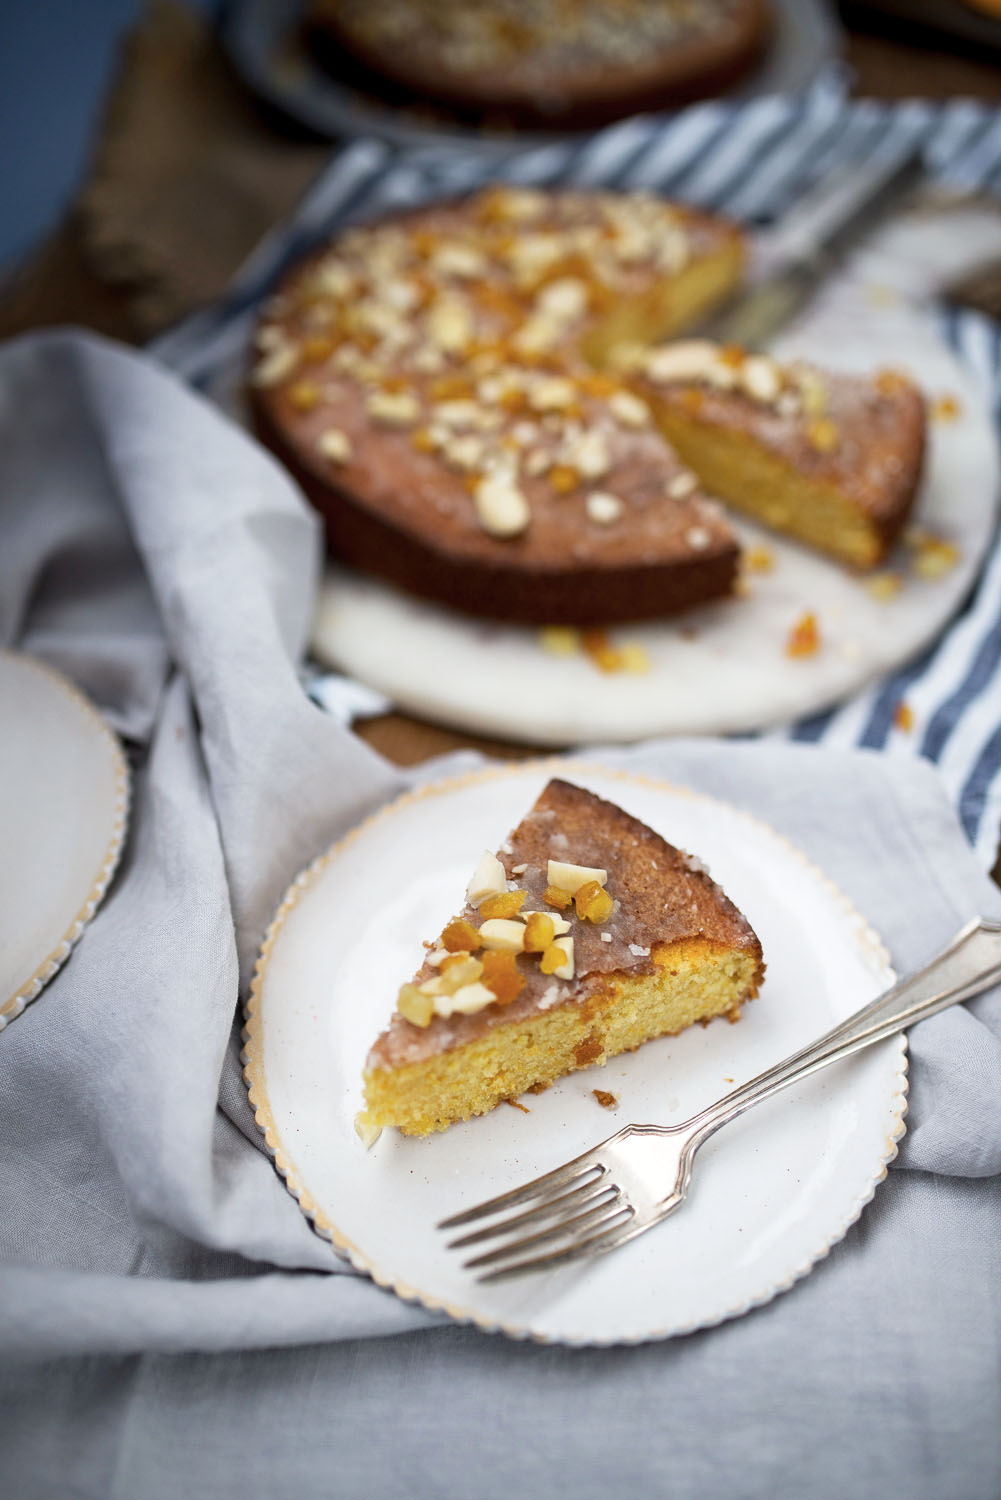 Nell Newman's Orange Scented Olive Oil Almond Cake from Share cookbook {Women for Women International}